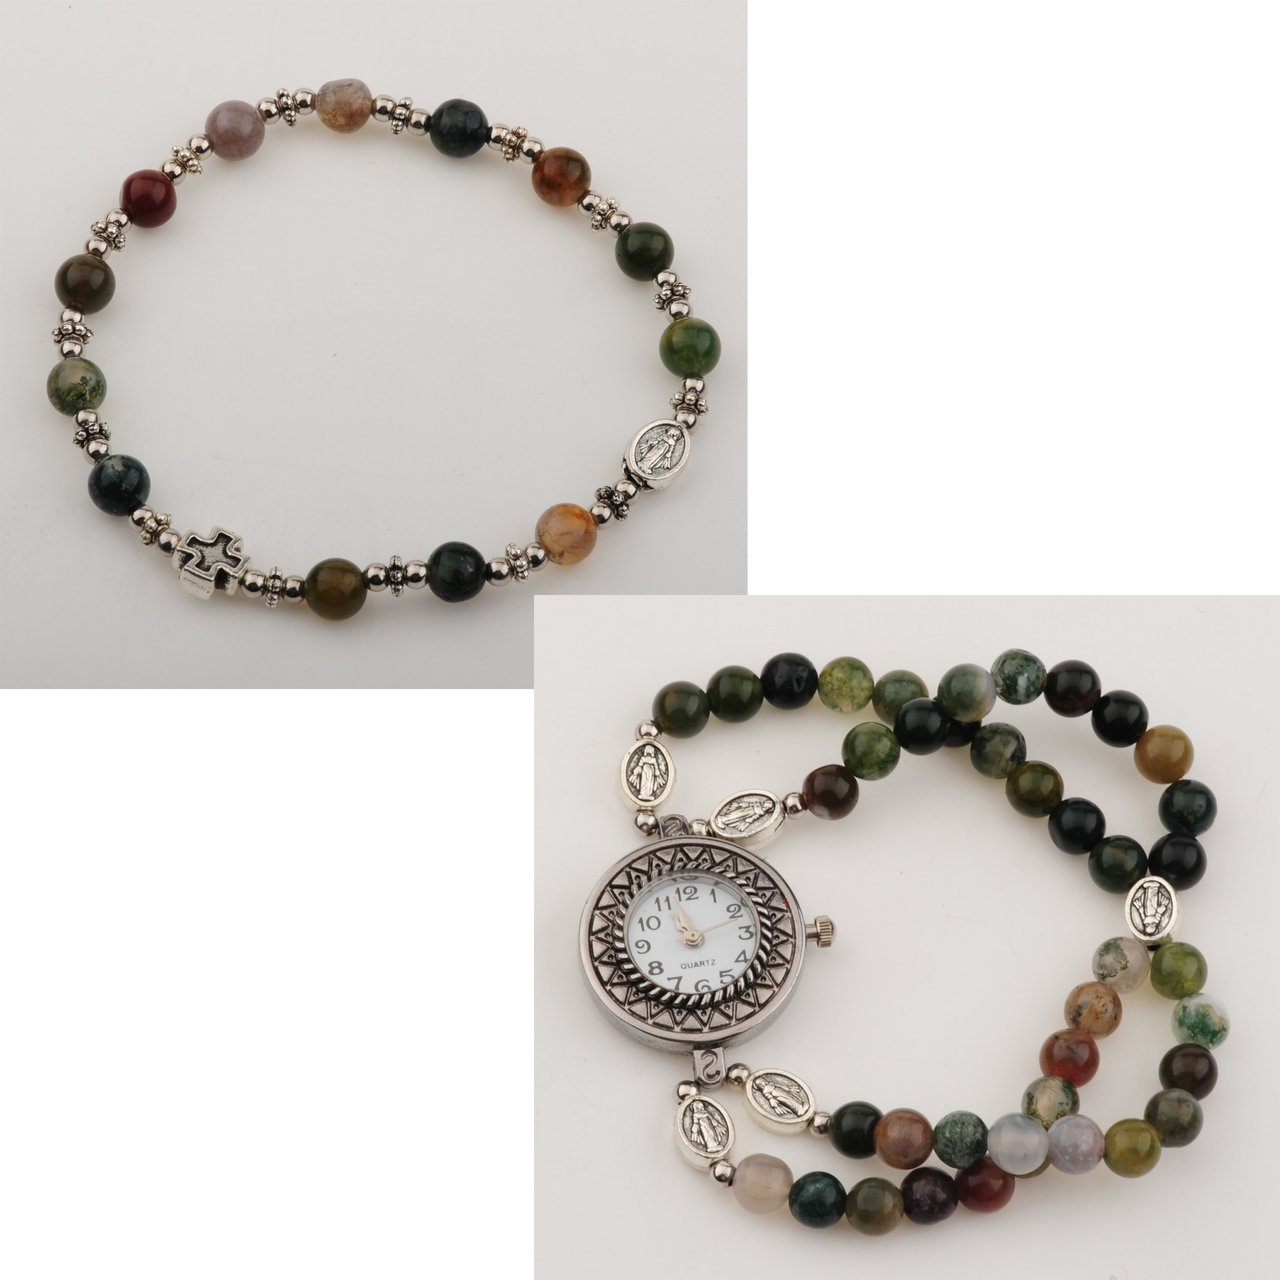 McVan 6mm India Agate Bead Rosary Watch Set, Comes in Box